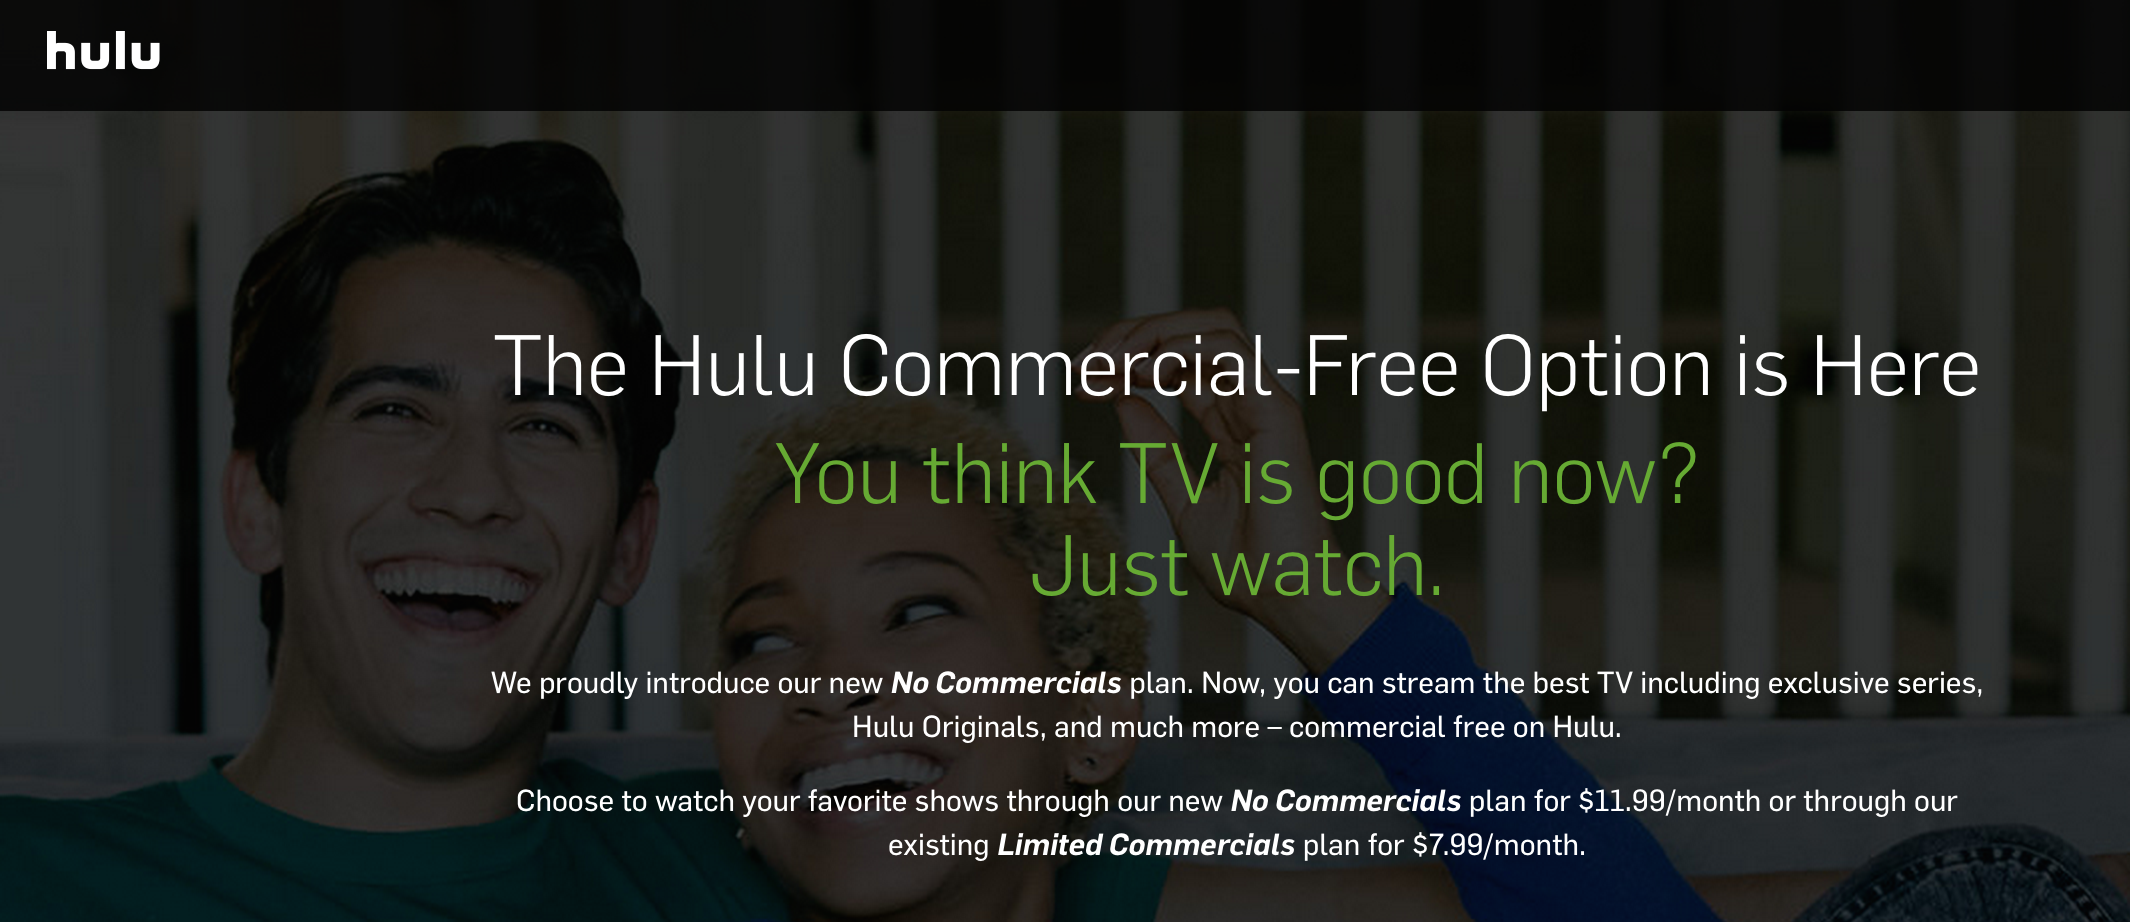 Hulu Finally Offers Ad-Free Option For $12/Month